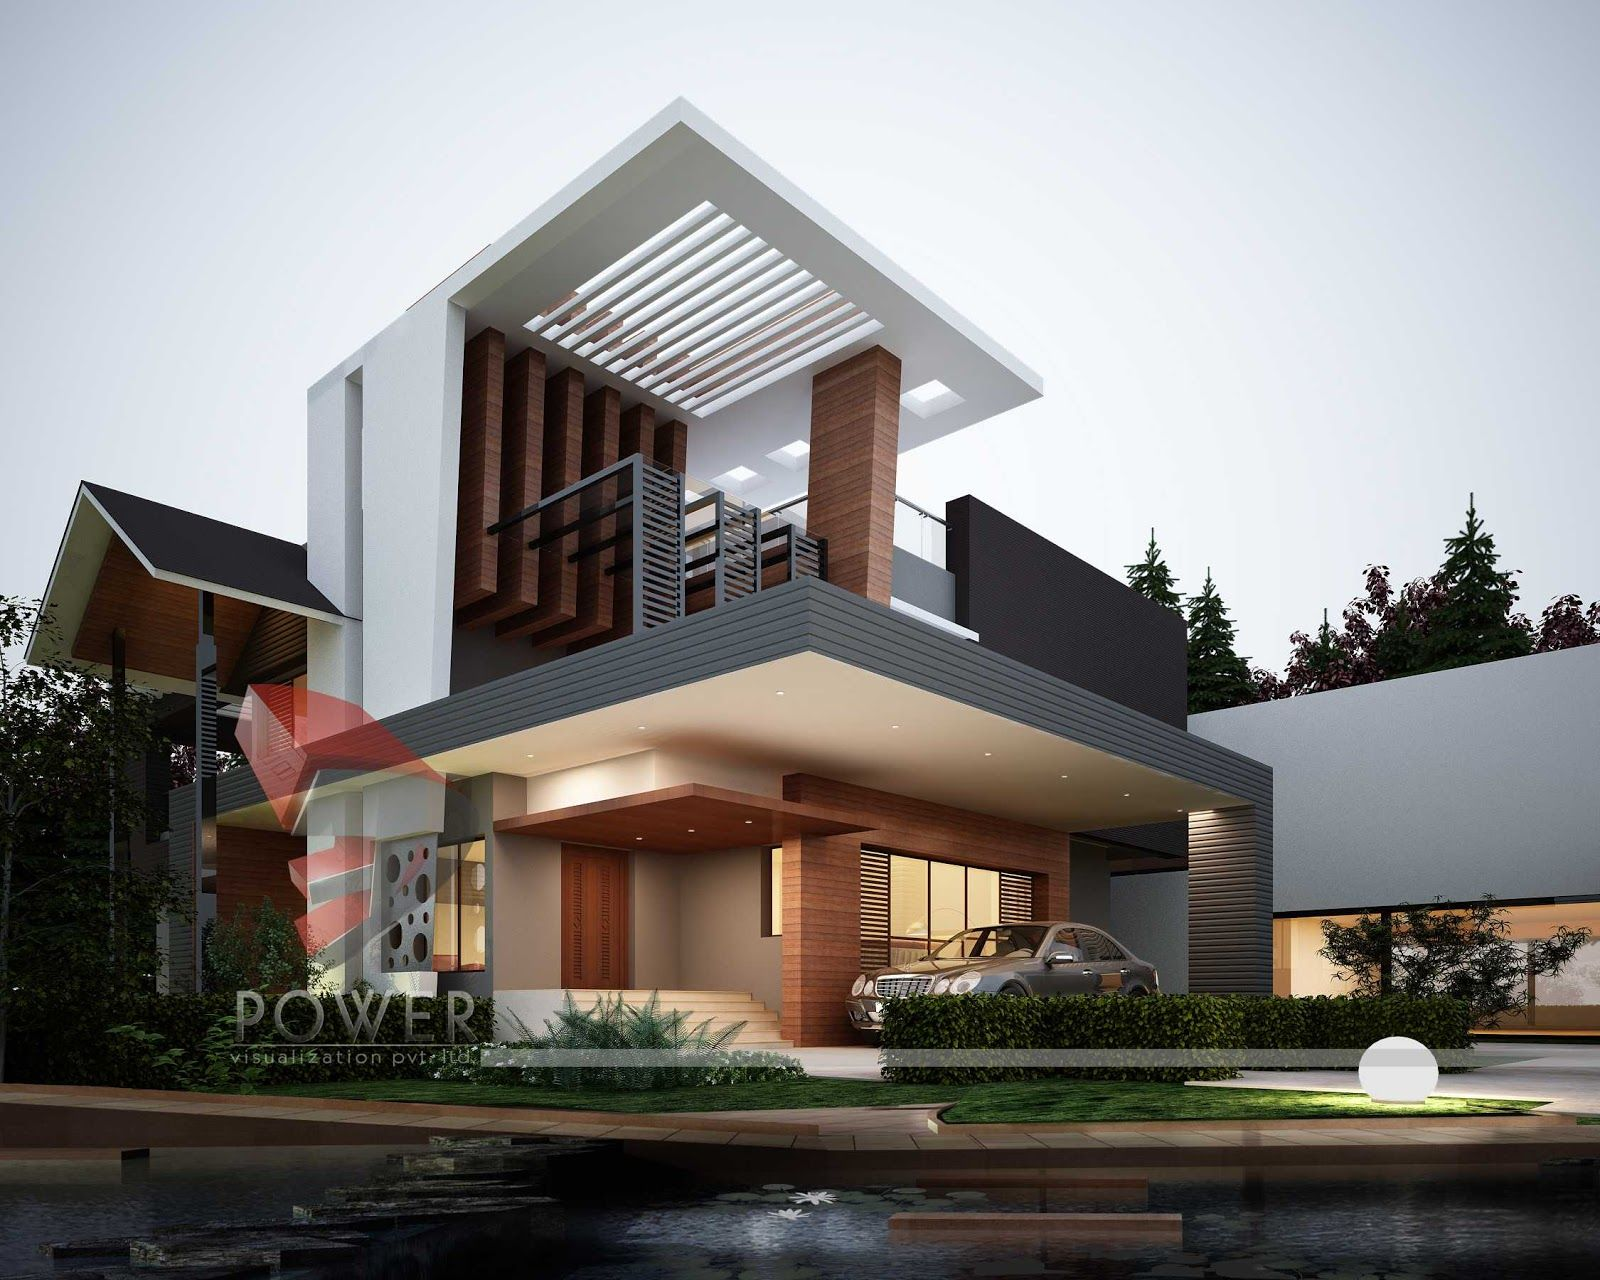 House design by famous architects - Modern Architecture House Design Plans